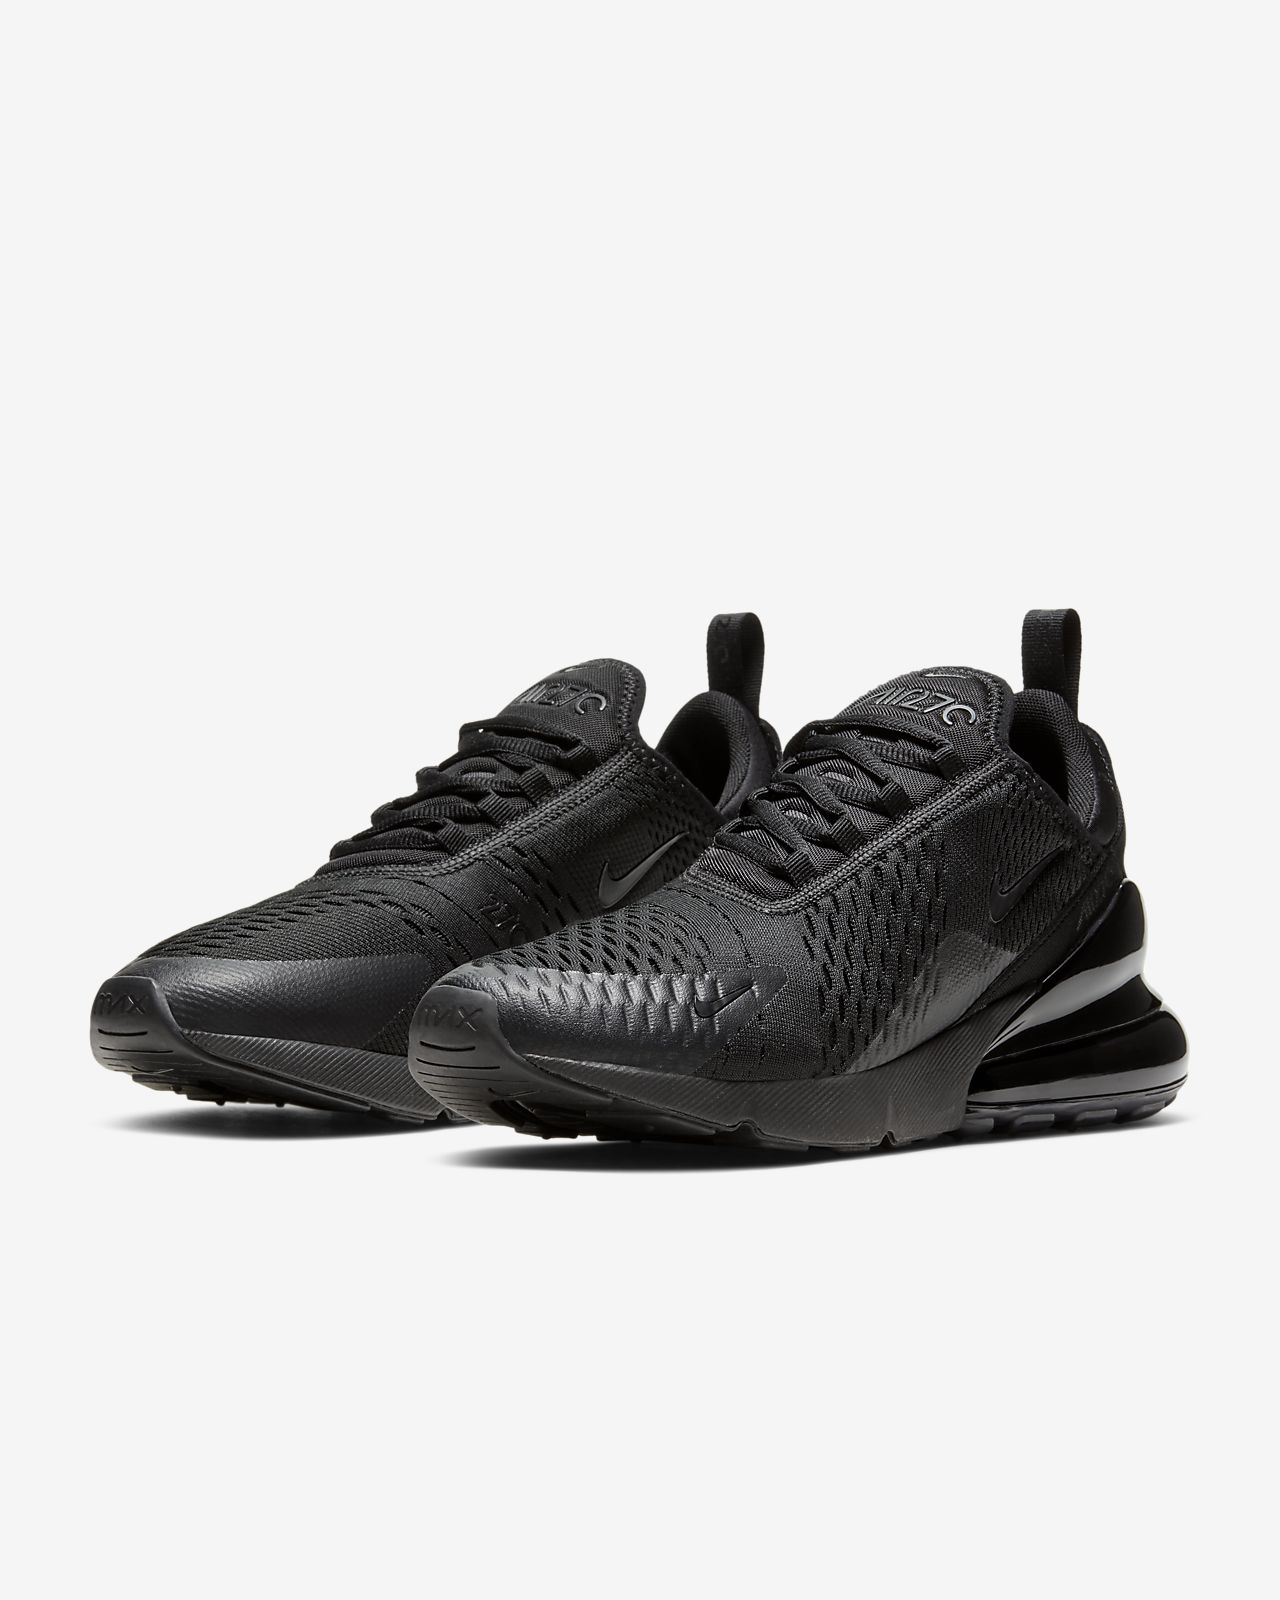 4bf668e68 Nike Air Max 270 Men s Shoe. Nike.com AU